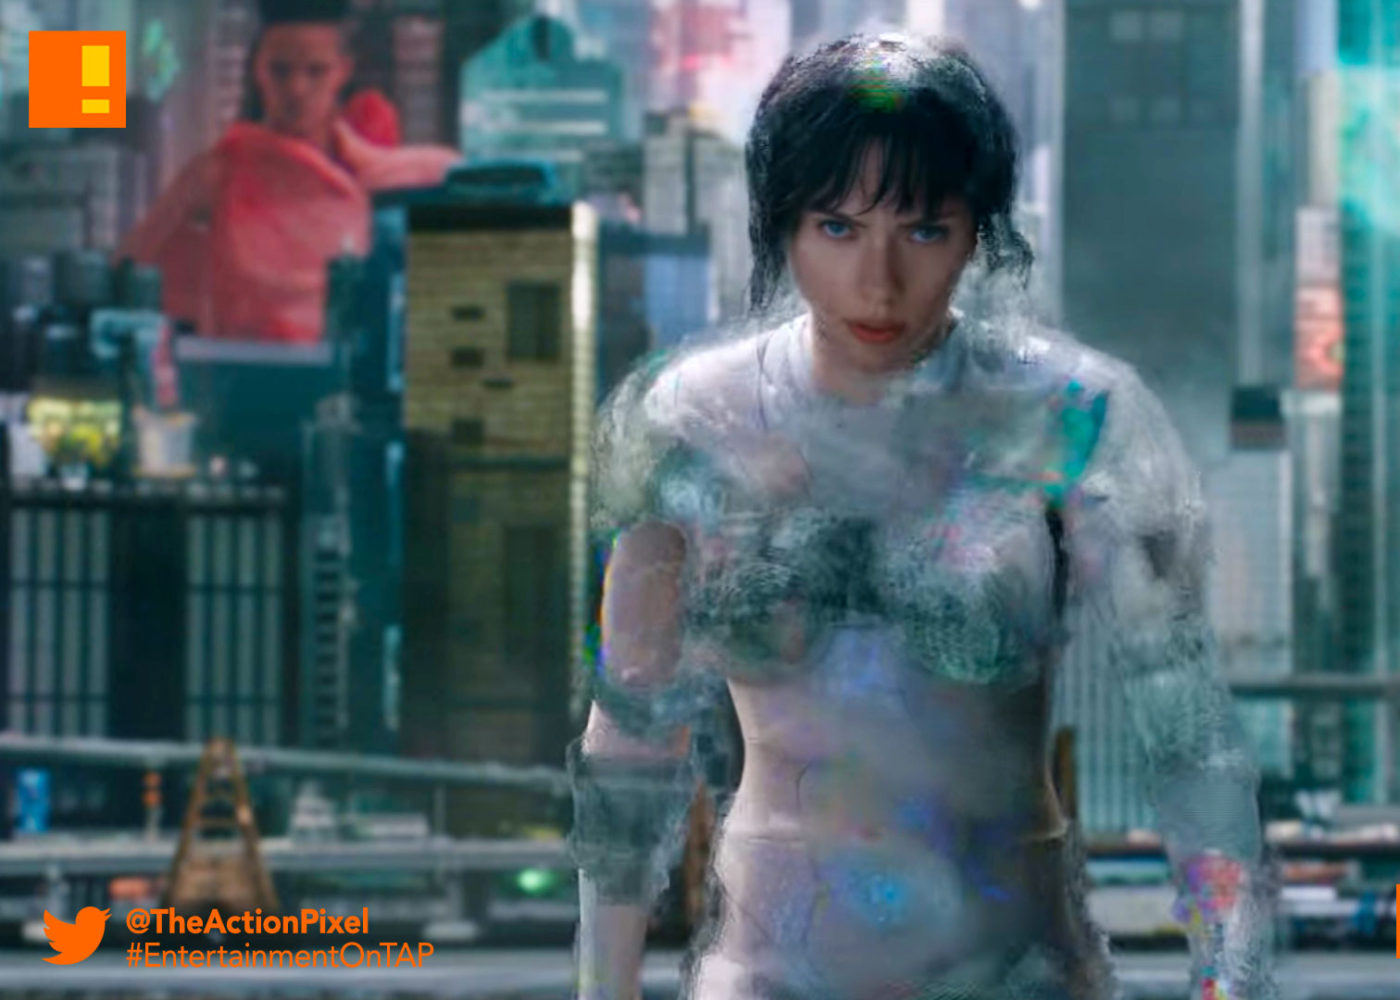 ghost in the shell, gits, scarlett johansson, the action pixel, entertainment on tap